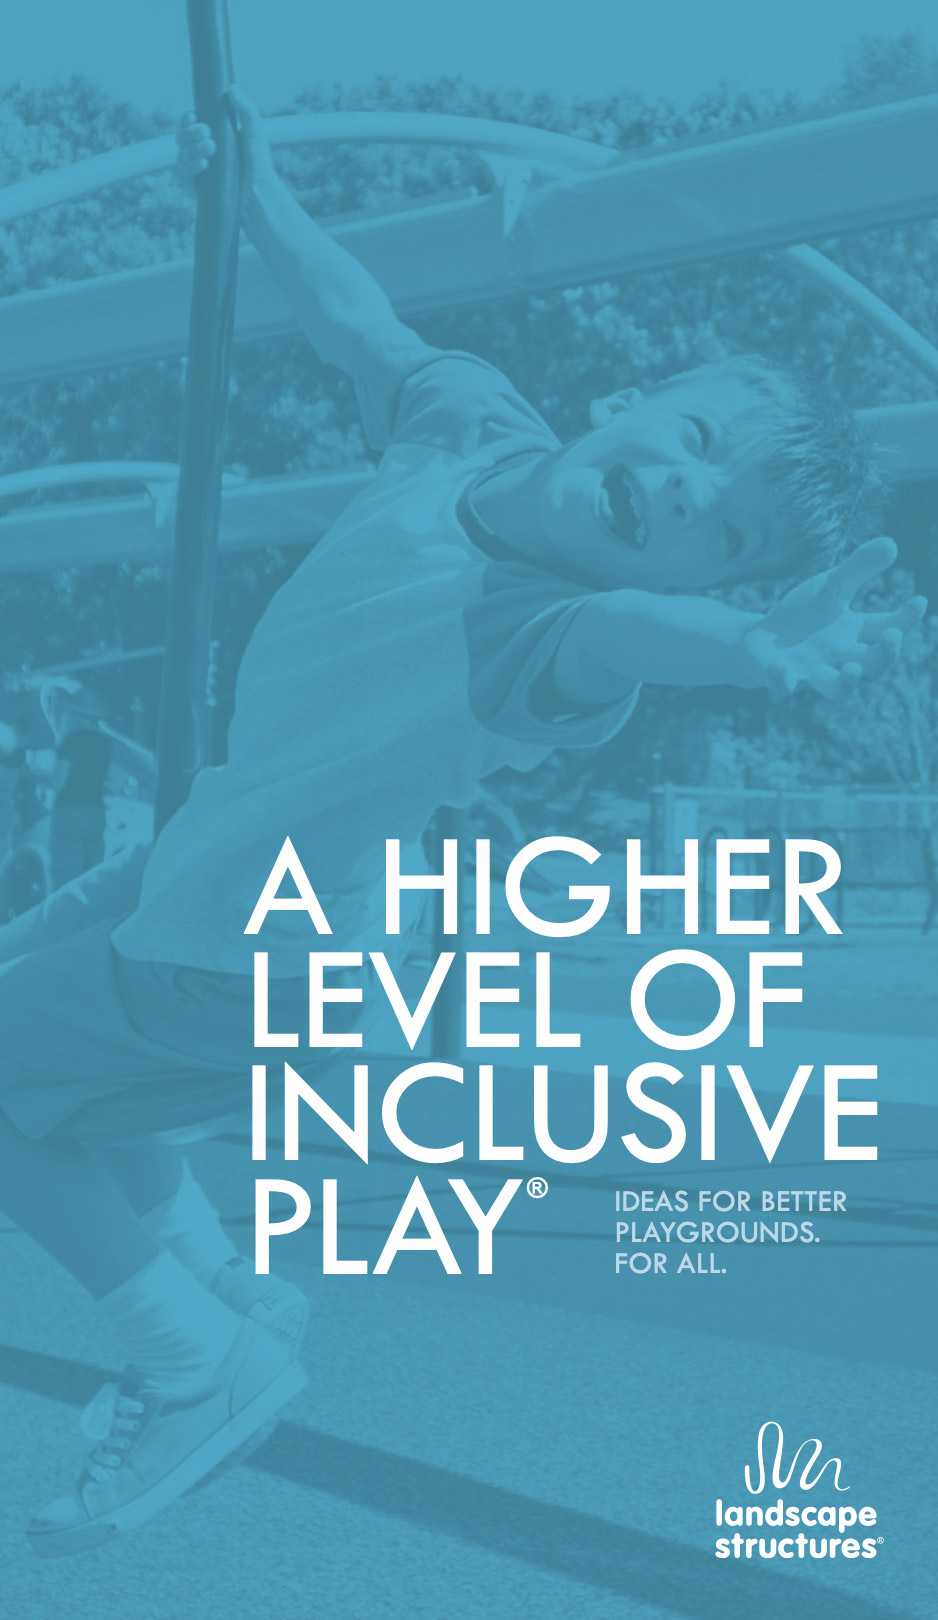 A higher level of inclusive play